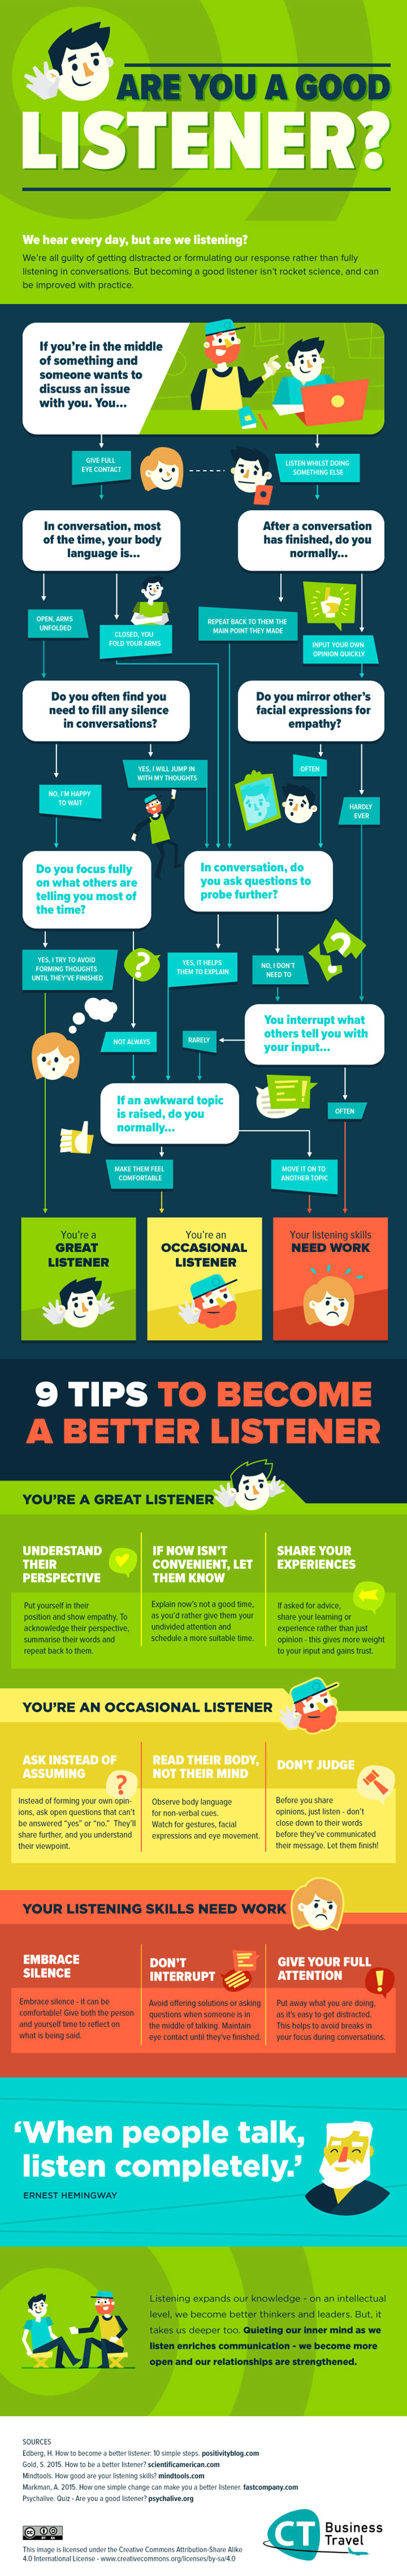 Are you a Good Listener - Self improvement Infographic